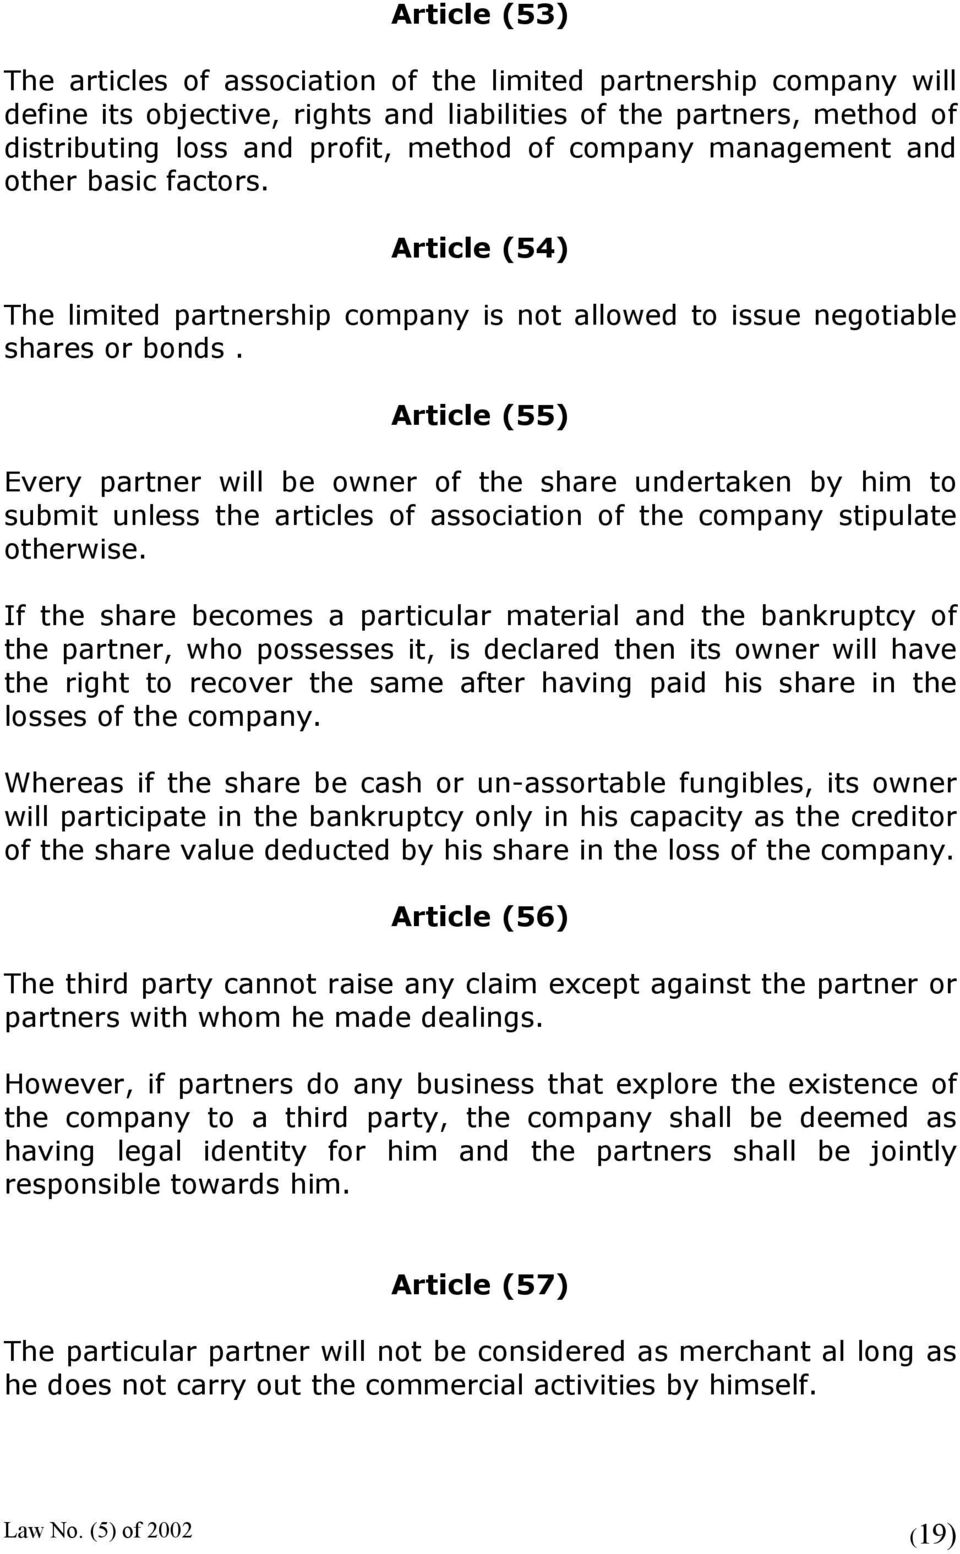 Article (55) Every partner will be owner of the share undertaken by him to submit unless the articles of association of the company stipulate otherwise.